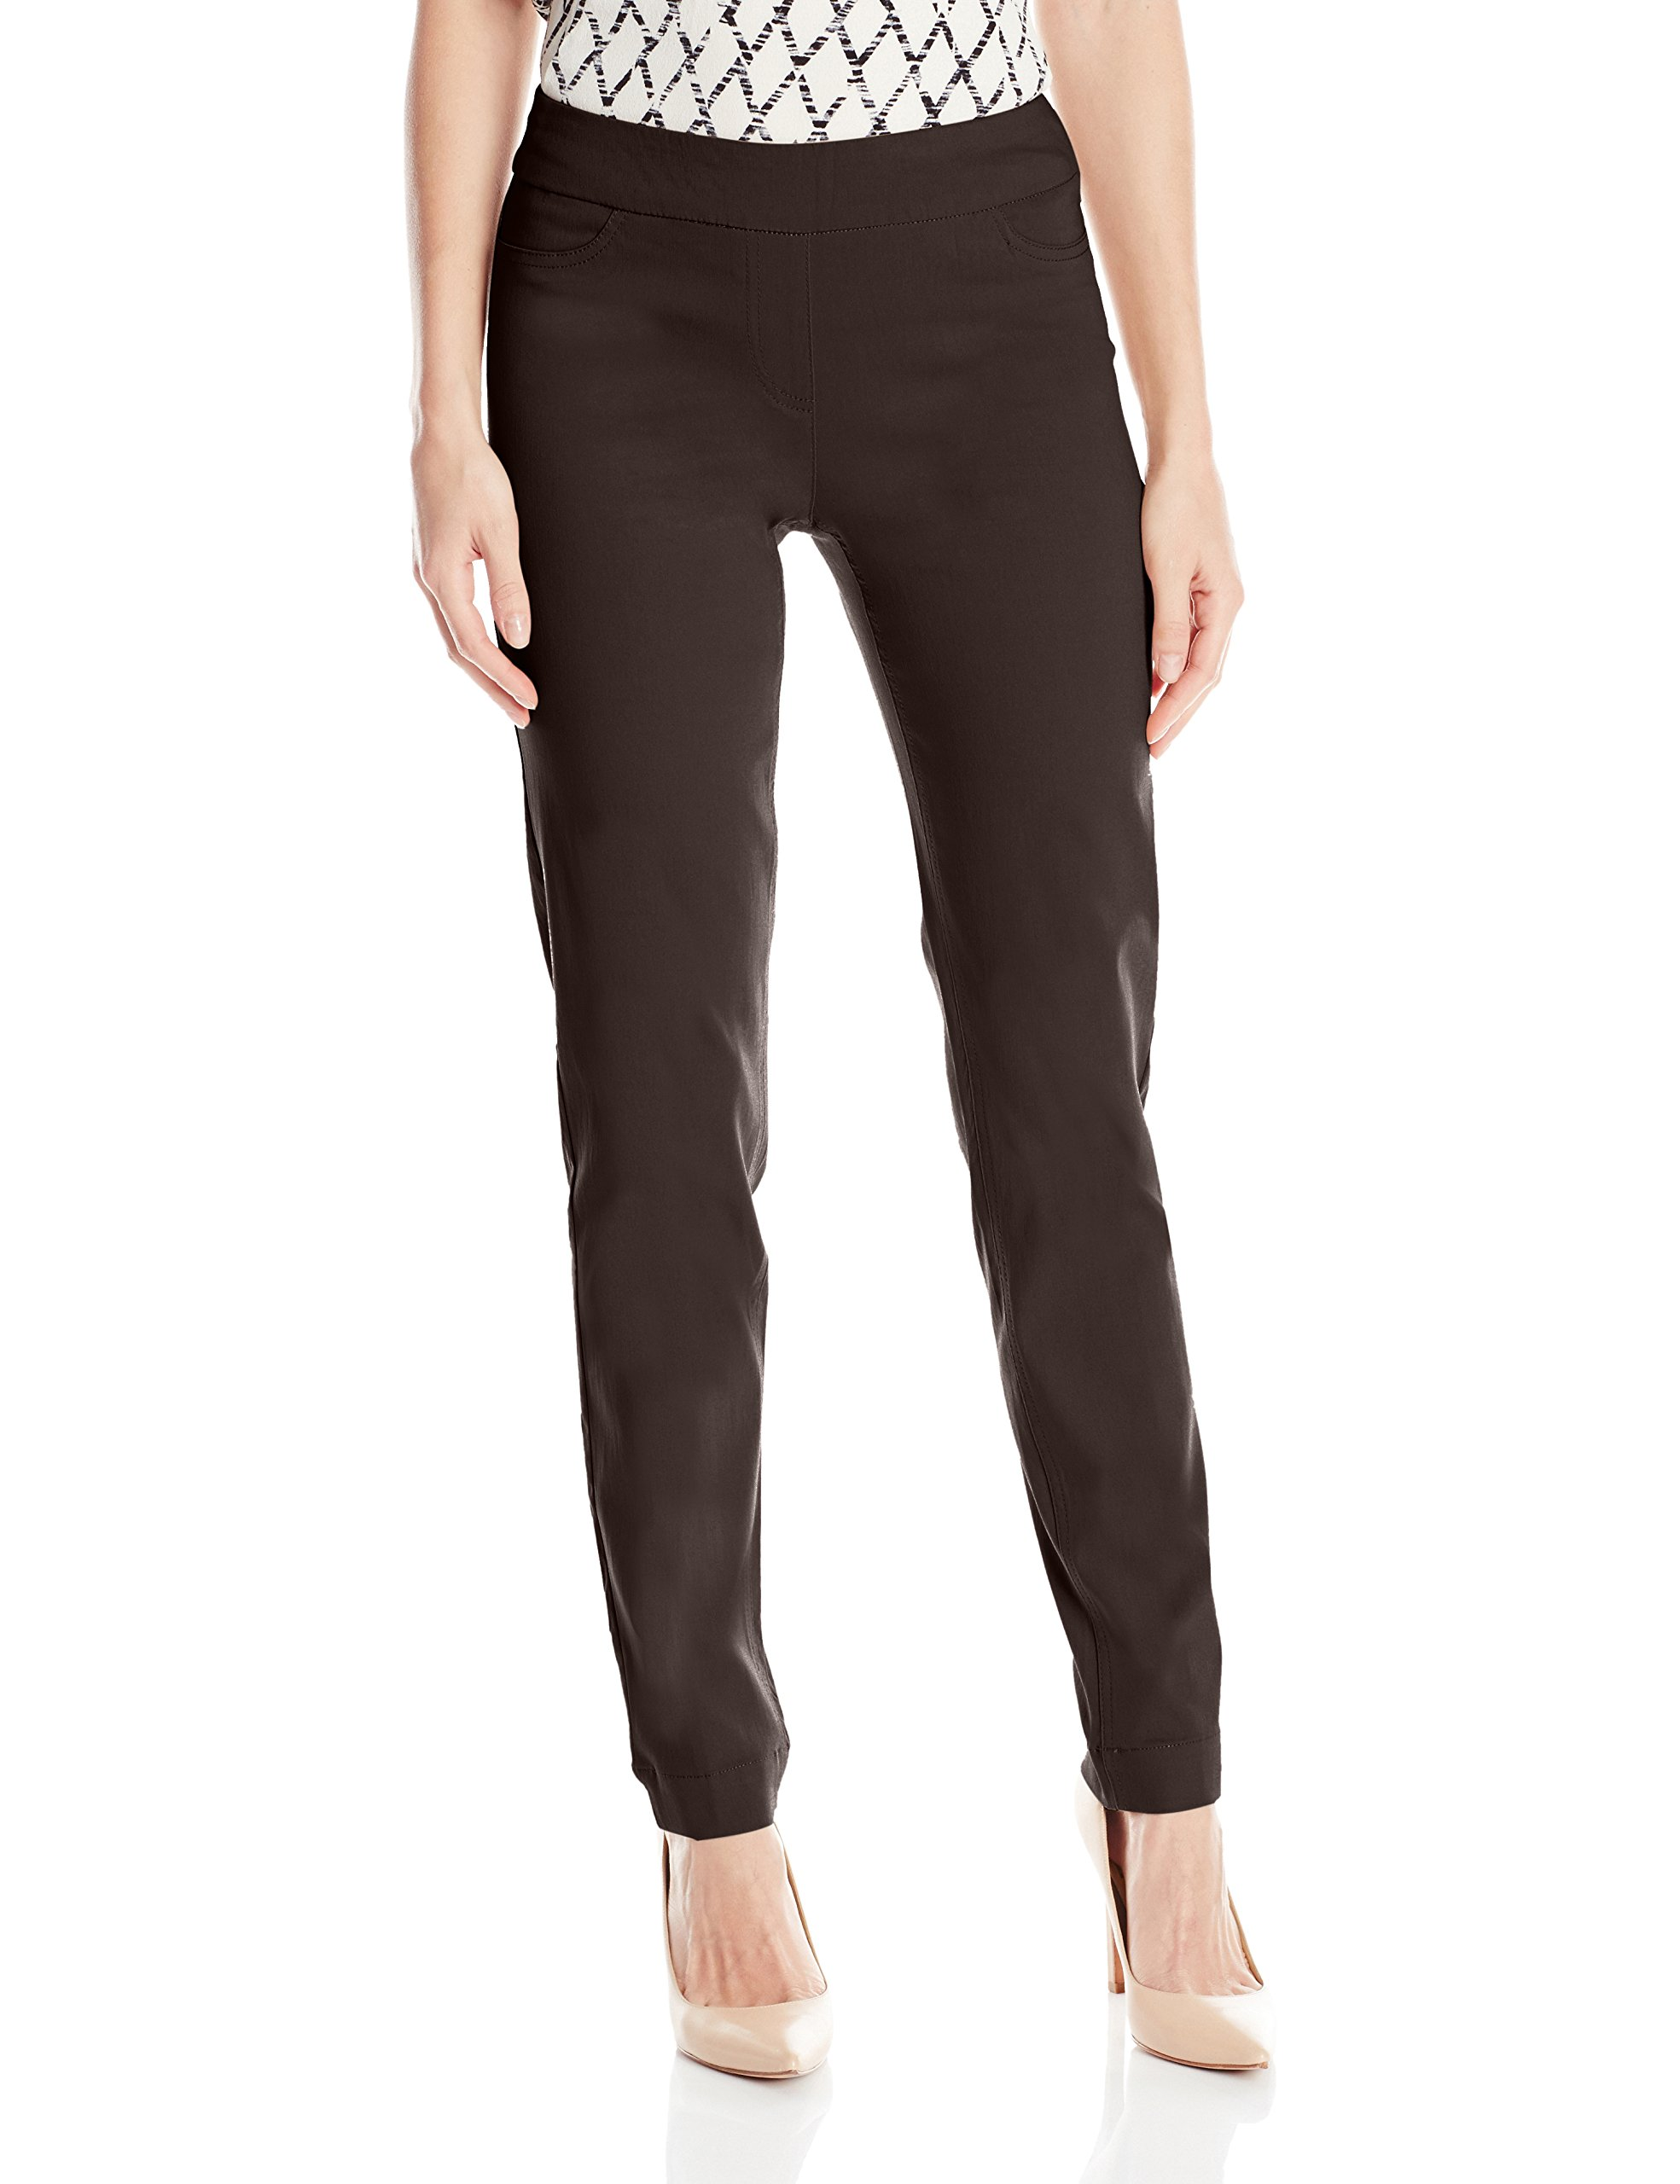 SLIM-SATION Women's Wide Band Regular Length Pull-On Straight Leg Pant with Tummy Control, Chocolate, 14